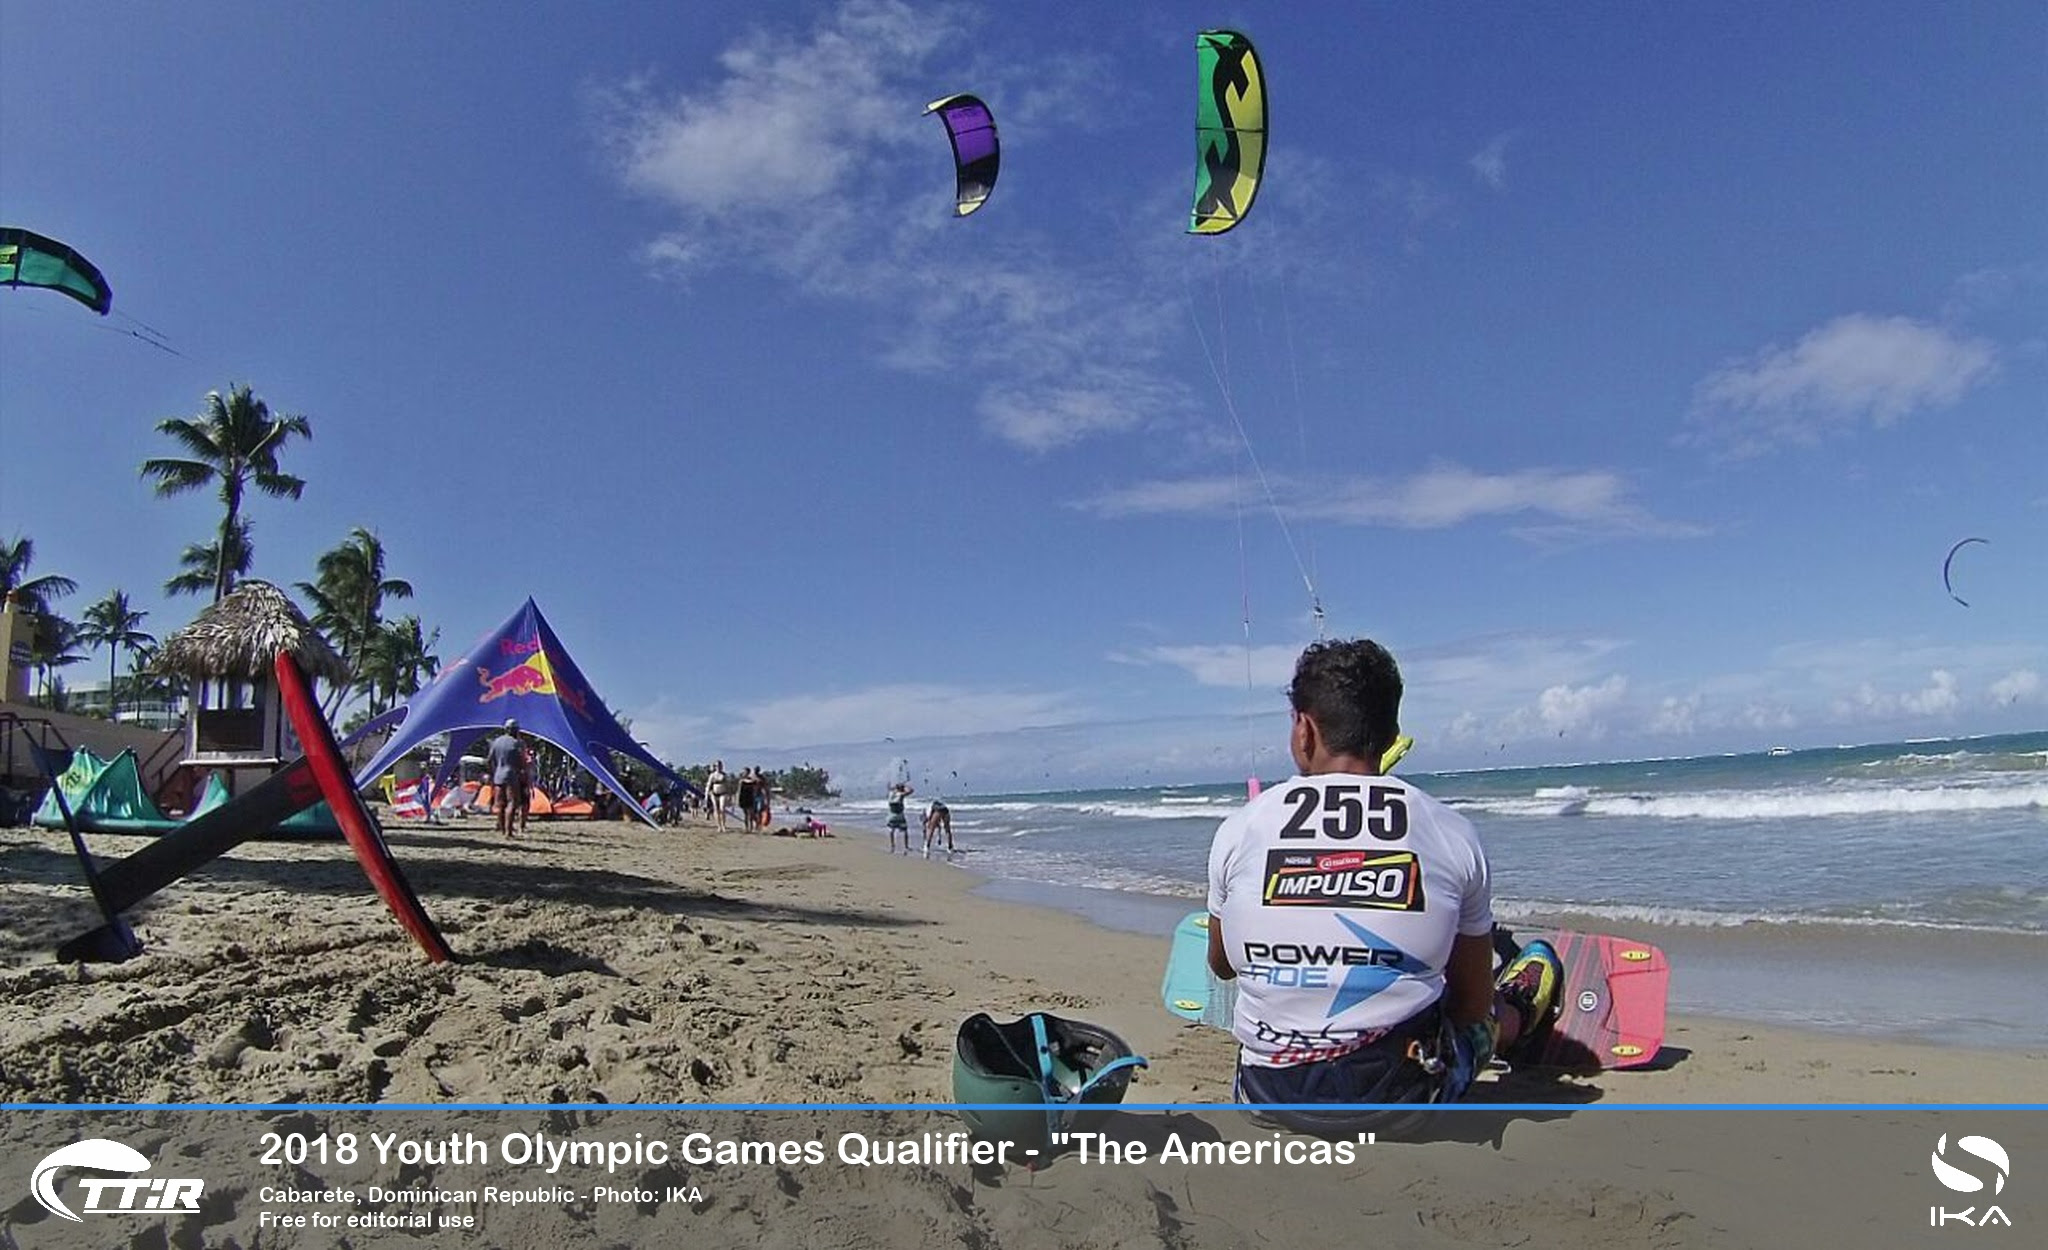 Antigua, Brazil, Dominican Republic and Venezuela win first direct qualifier spots for Kiteboarding Youth Olympics in perfect Cabarete conditions